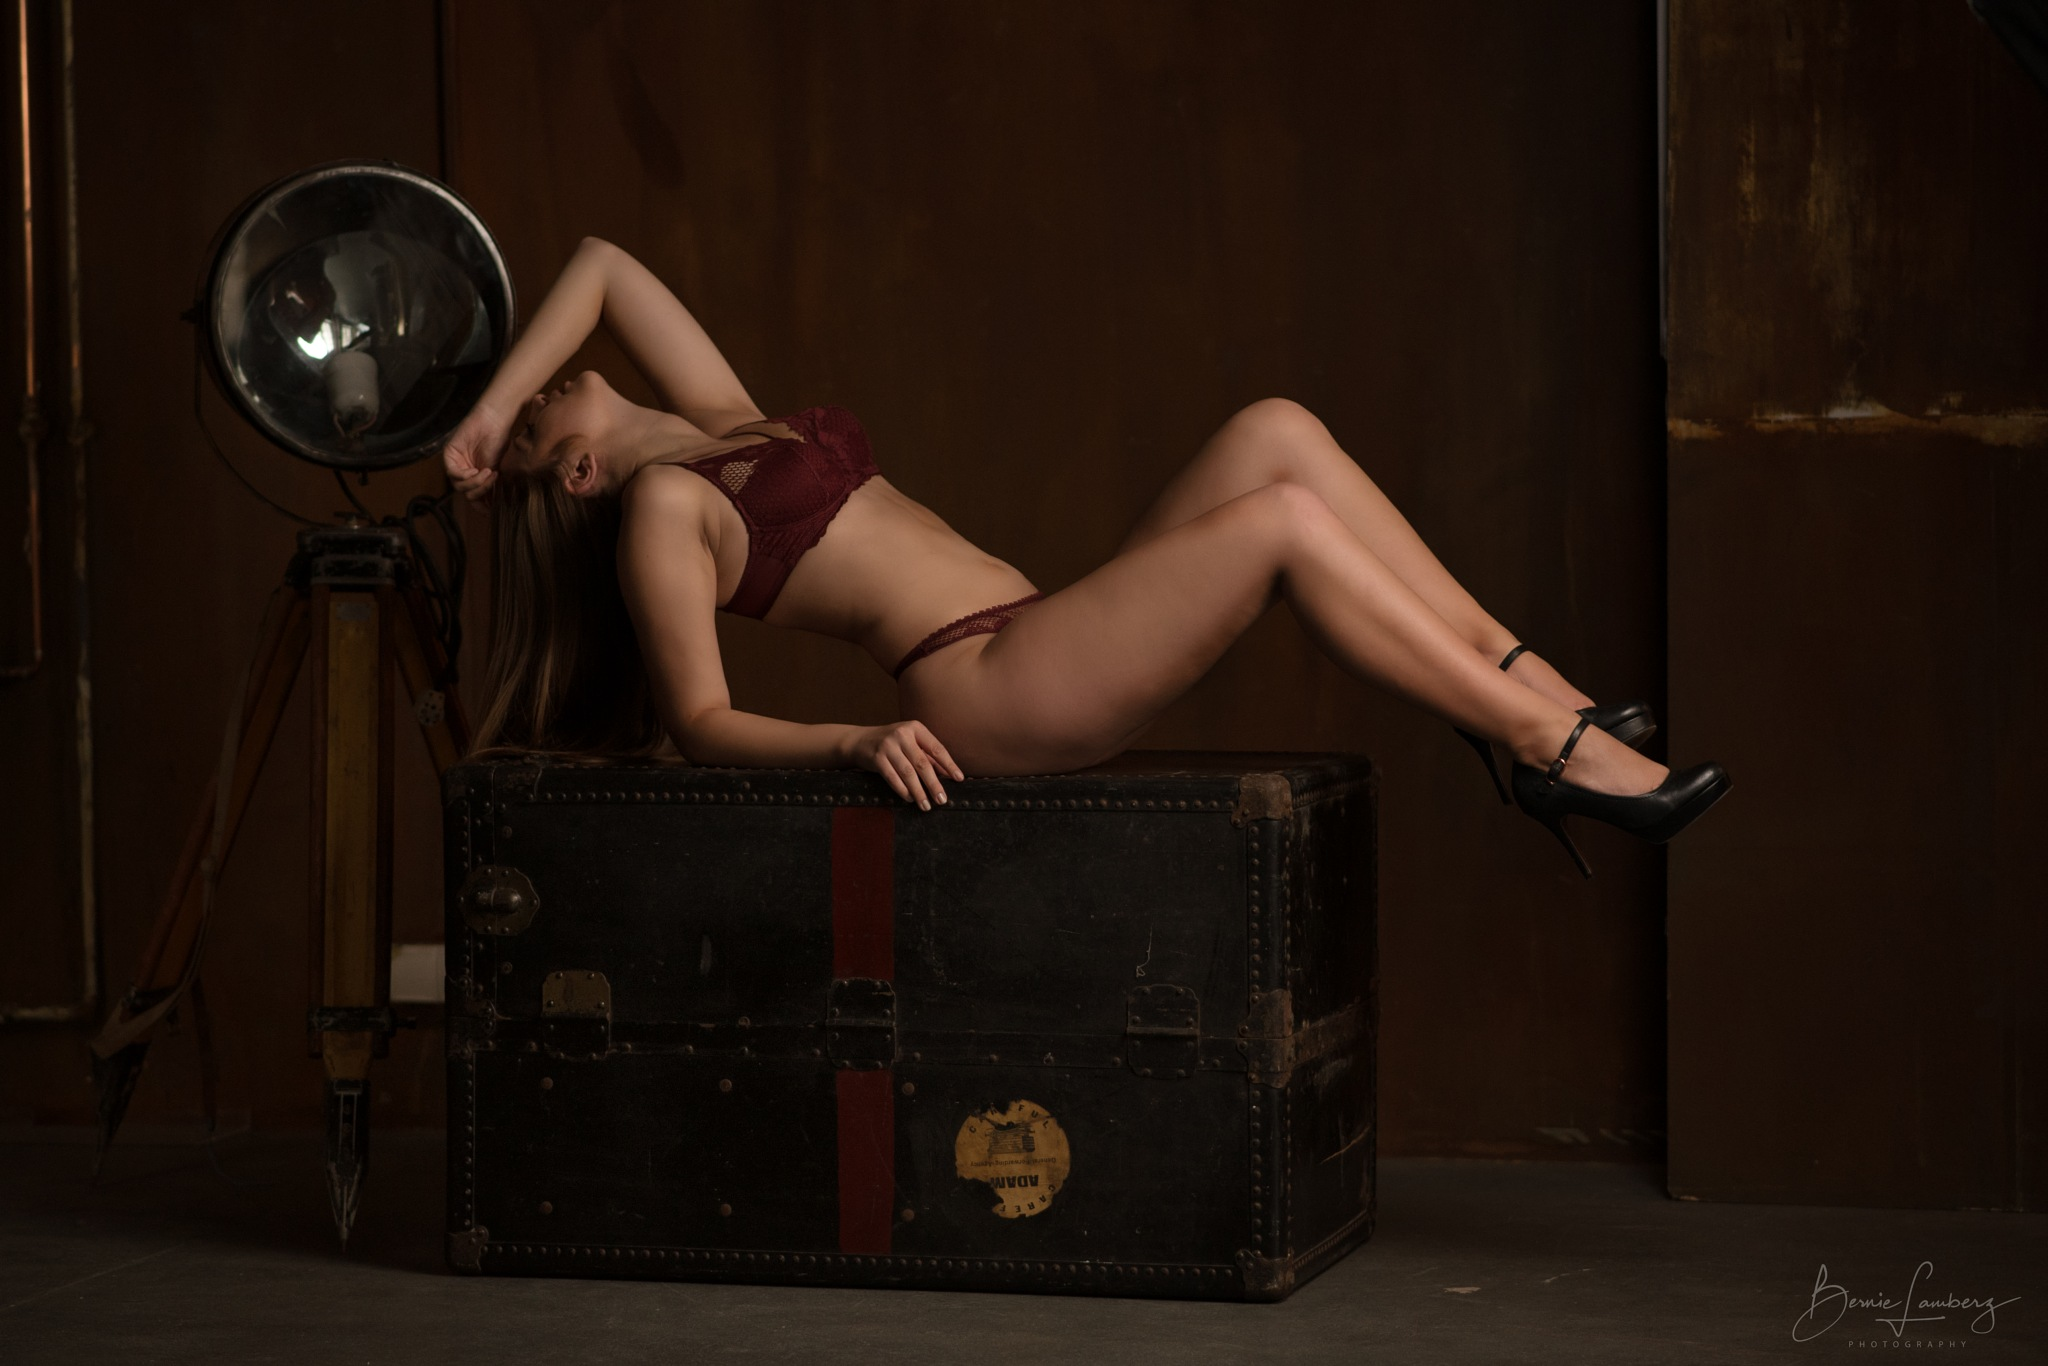 on the box by Bernie Lamberz photography